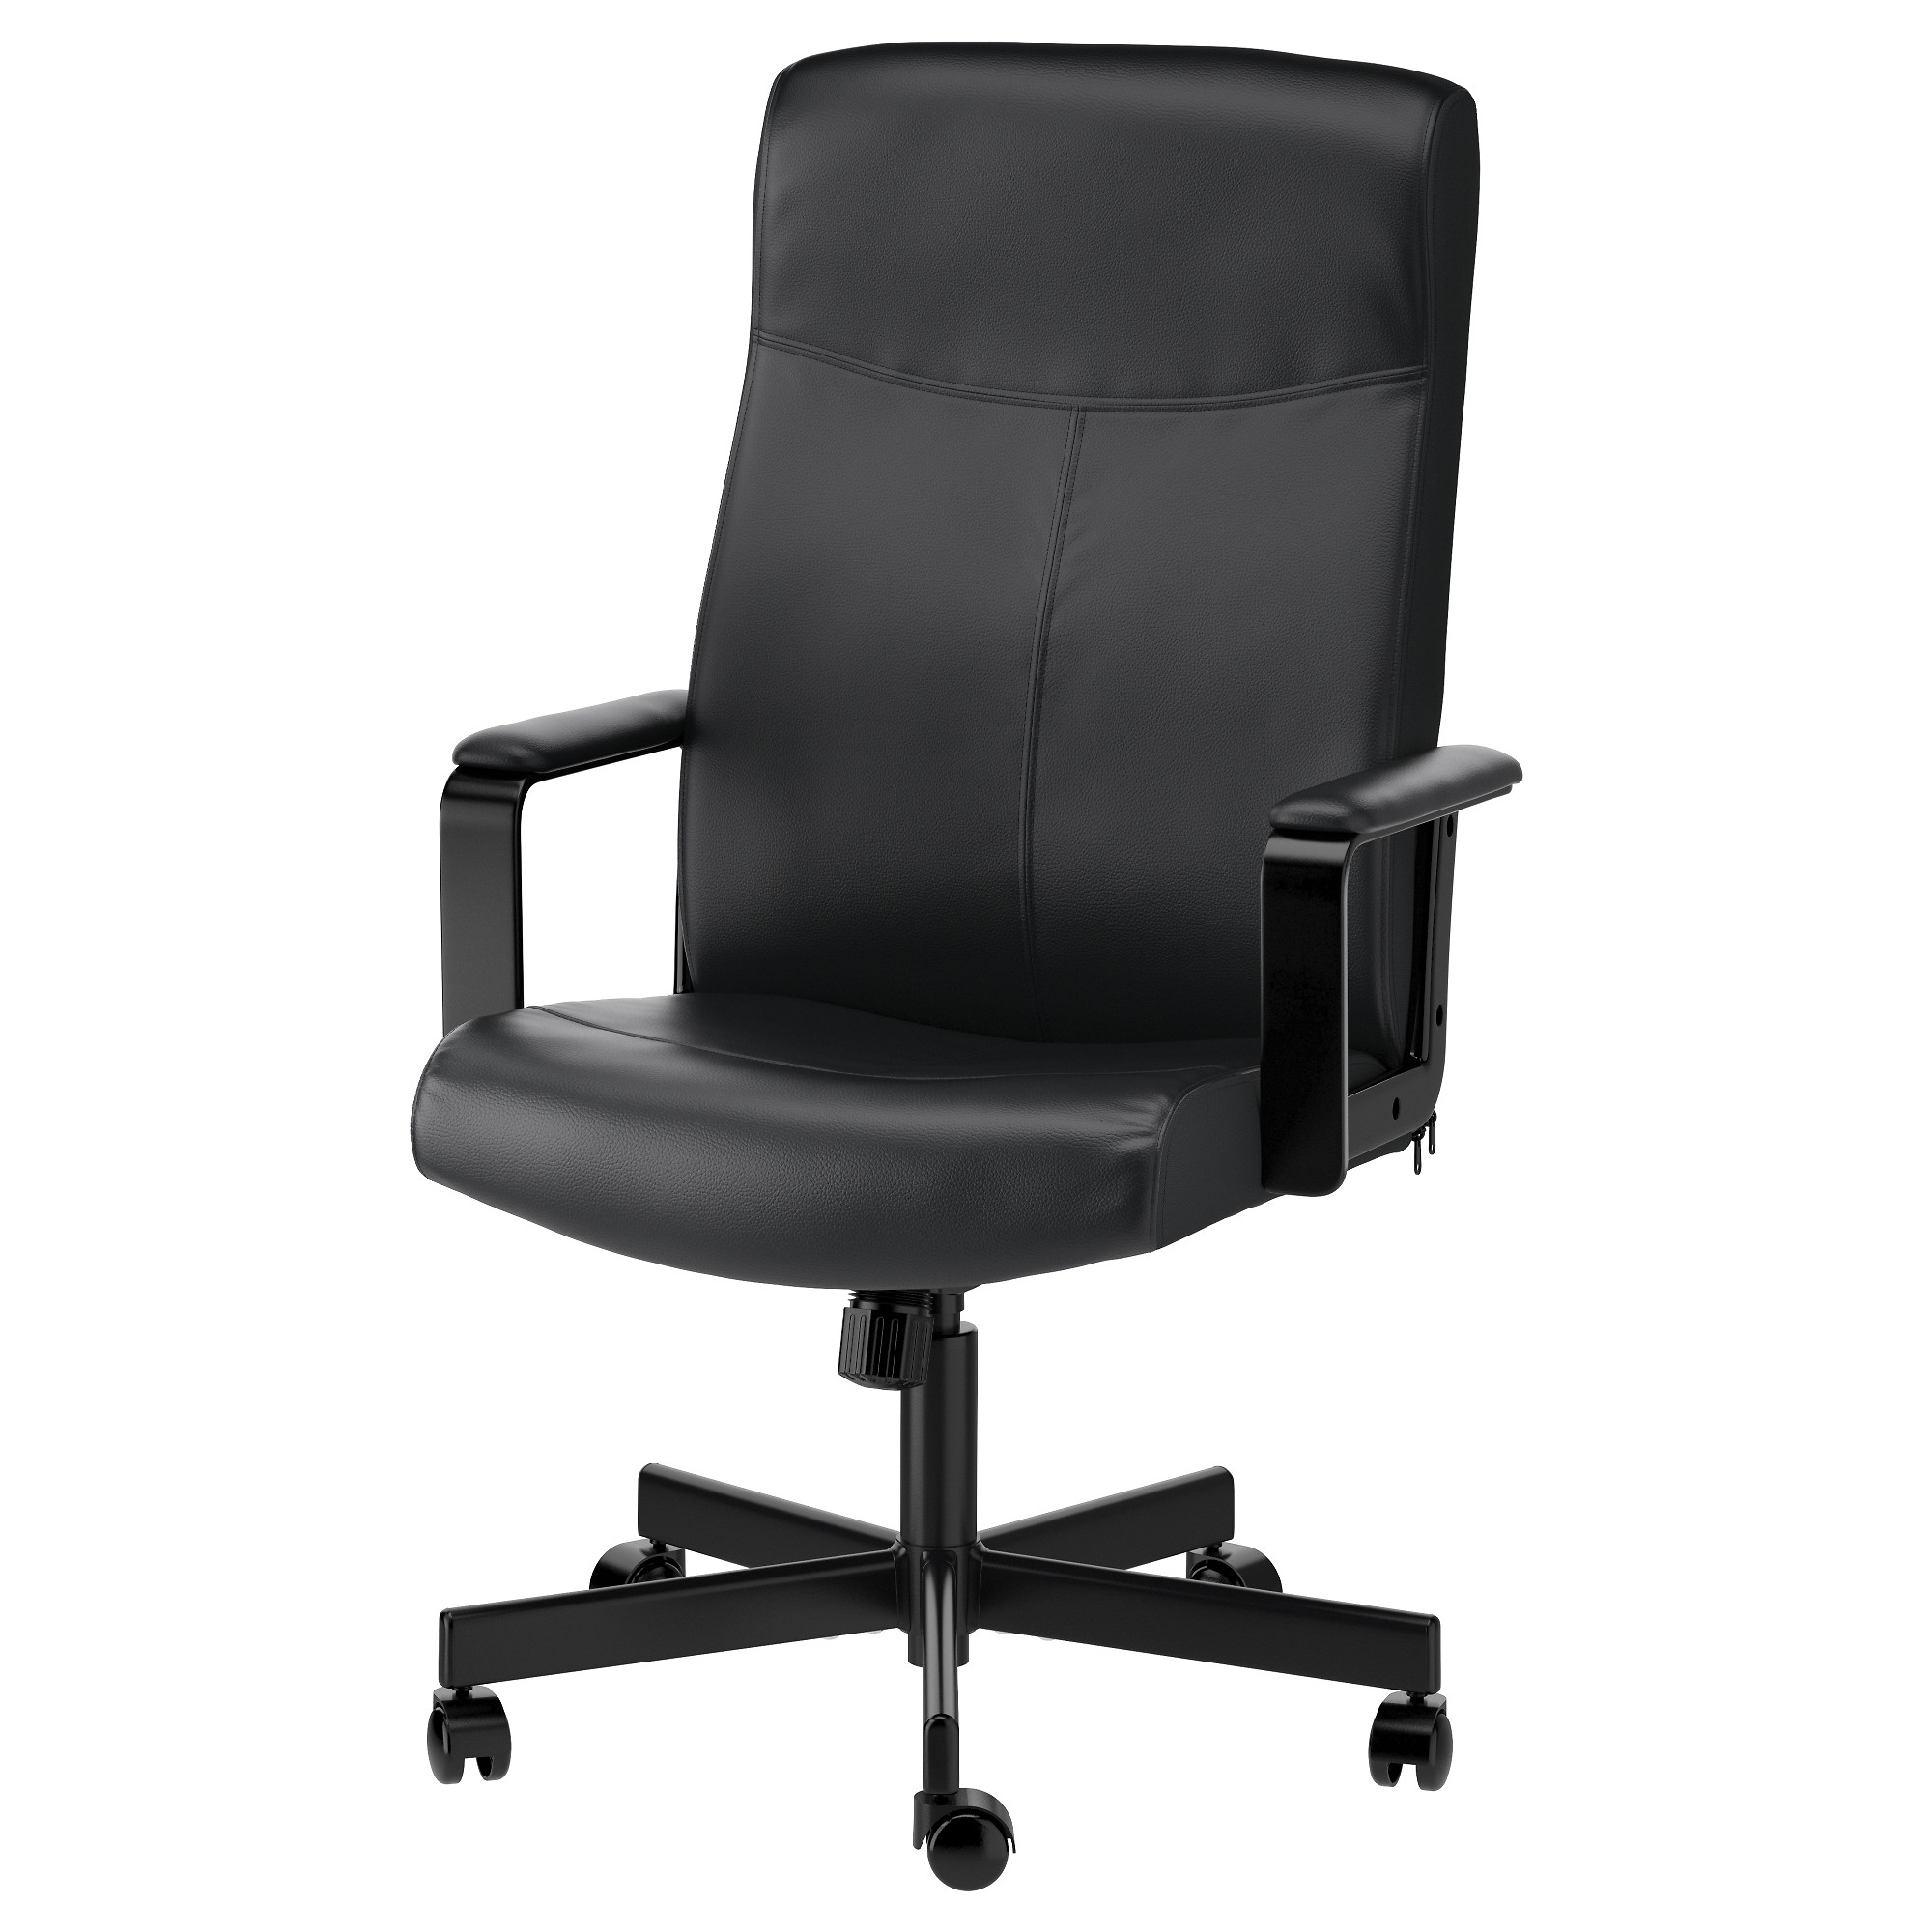 millberget swivel chair - bomstad black - ikea